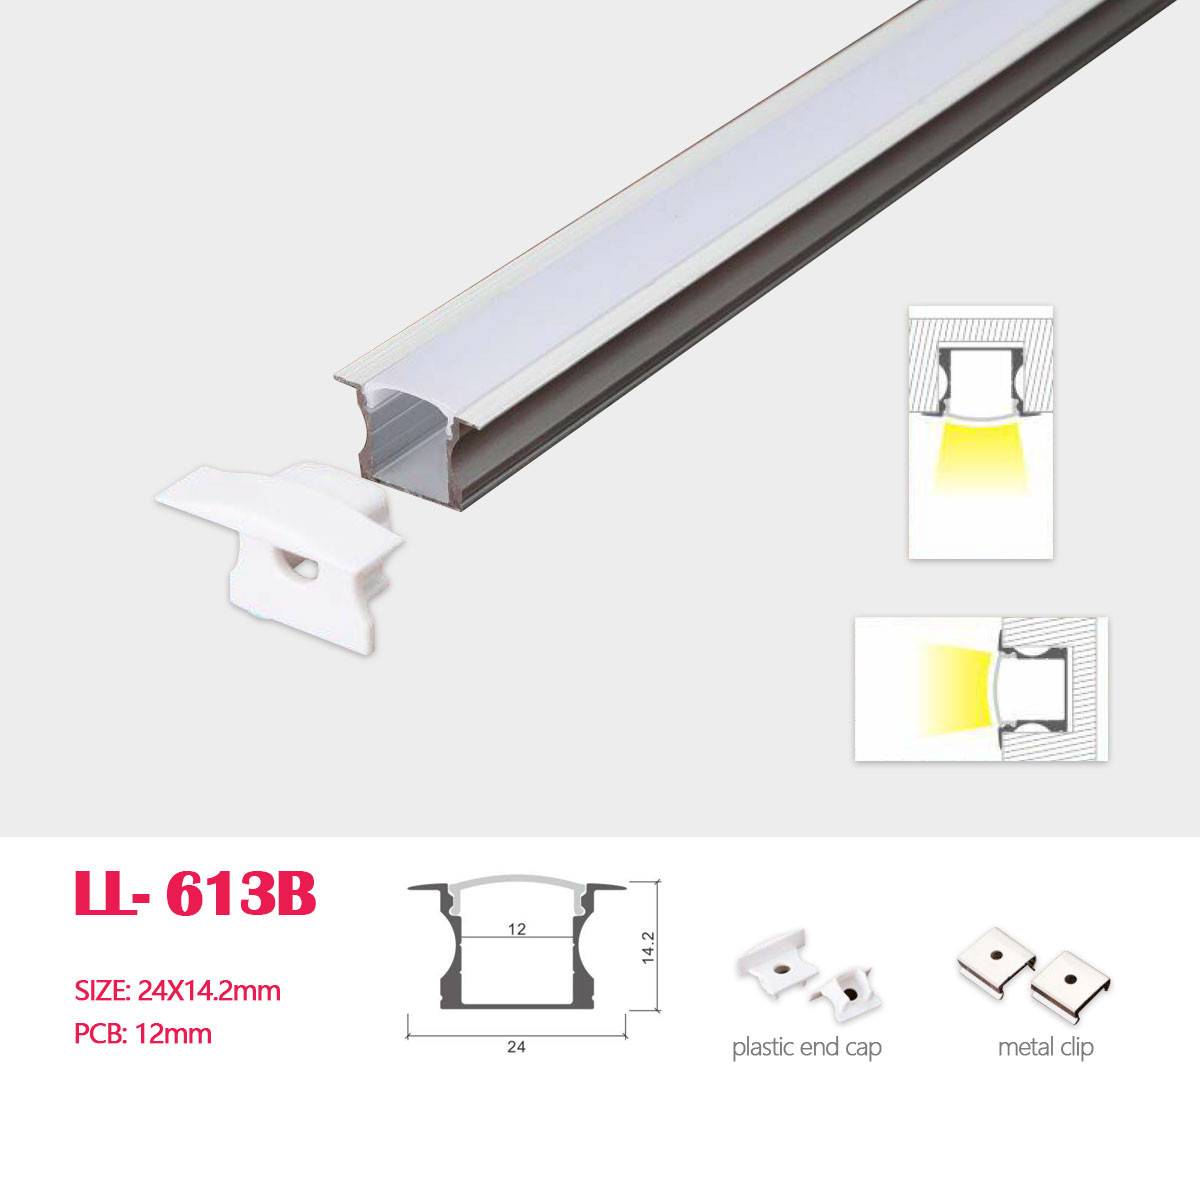 Image of: 1m 3 28ft 24mm 14 2mm Recessed Or Built In Wallled Aluminum Profile With Cover End Caps And Mounting Clips For Led Rigid Strip Lighting System